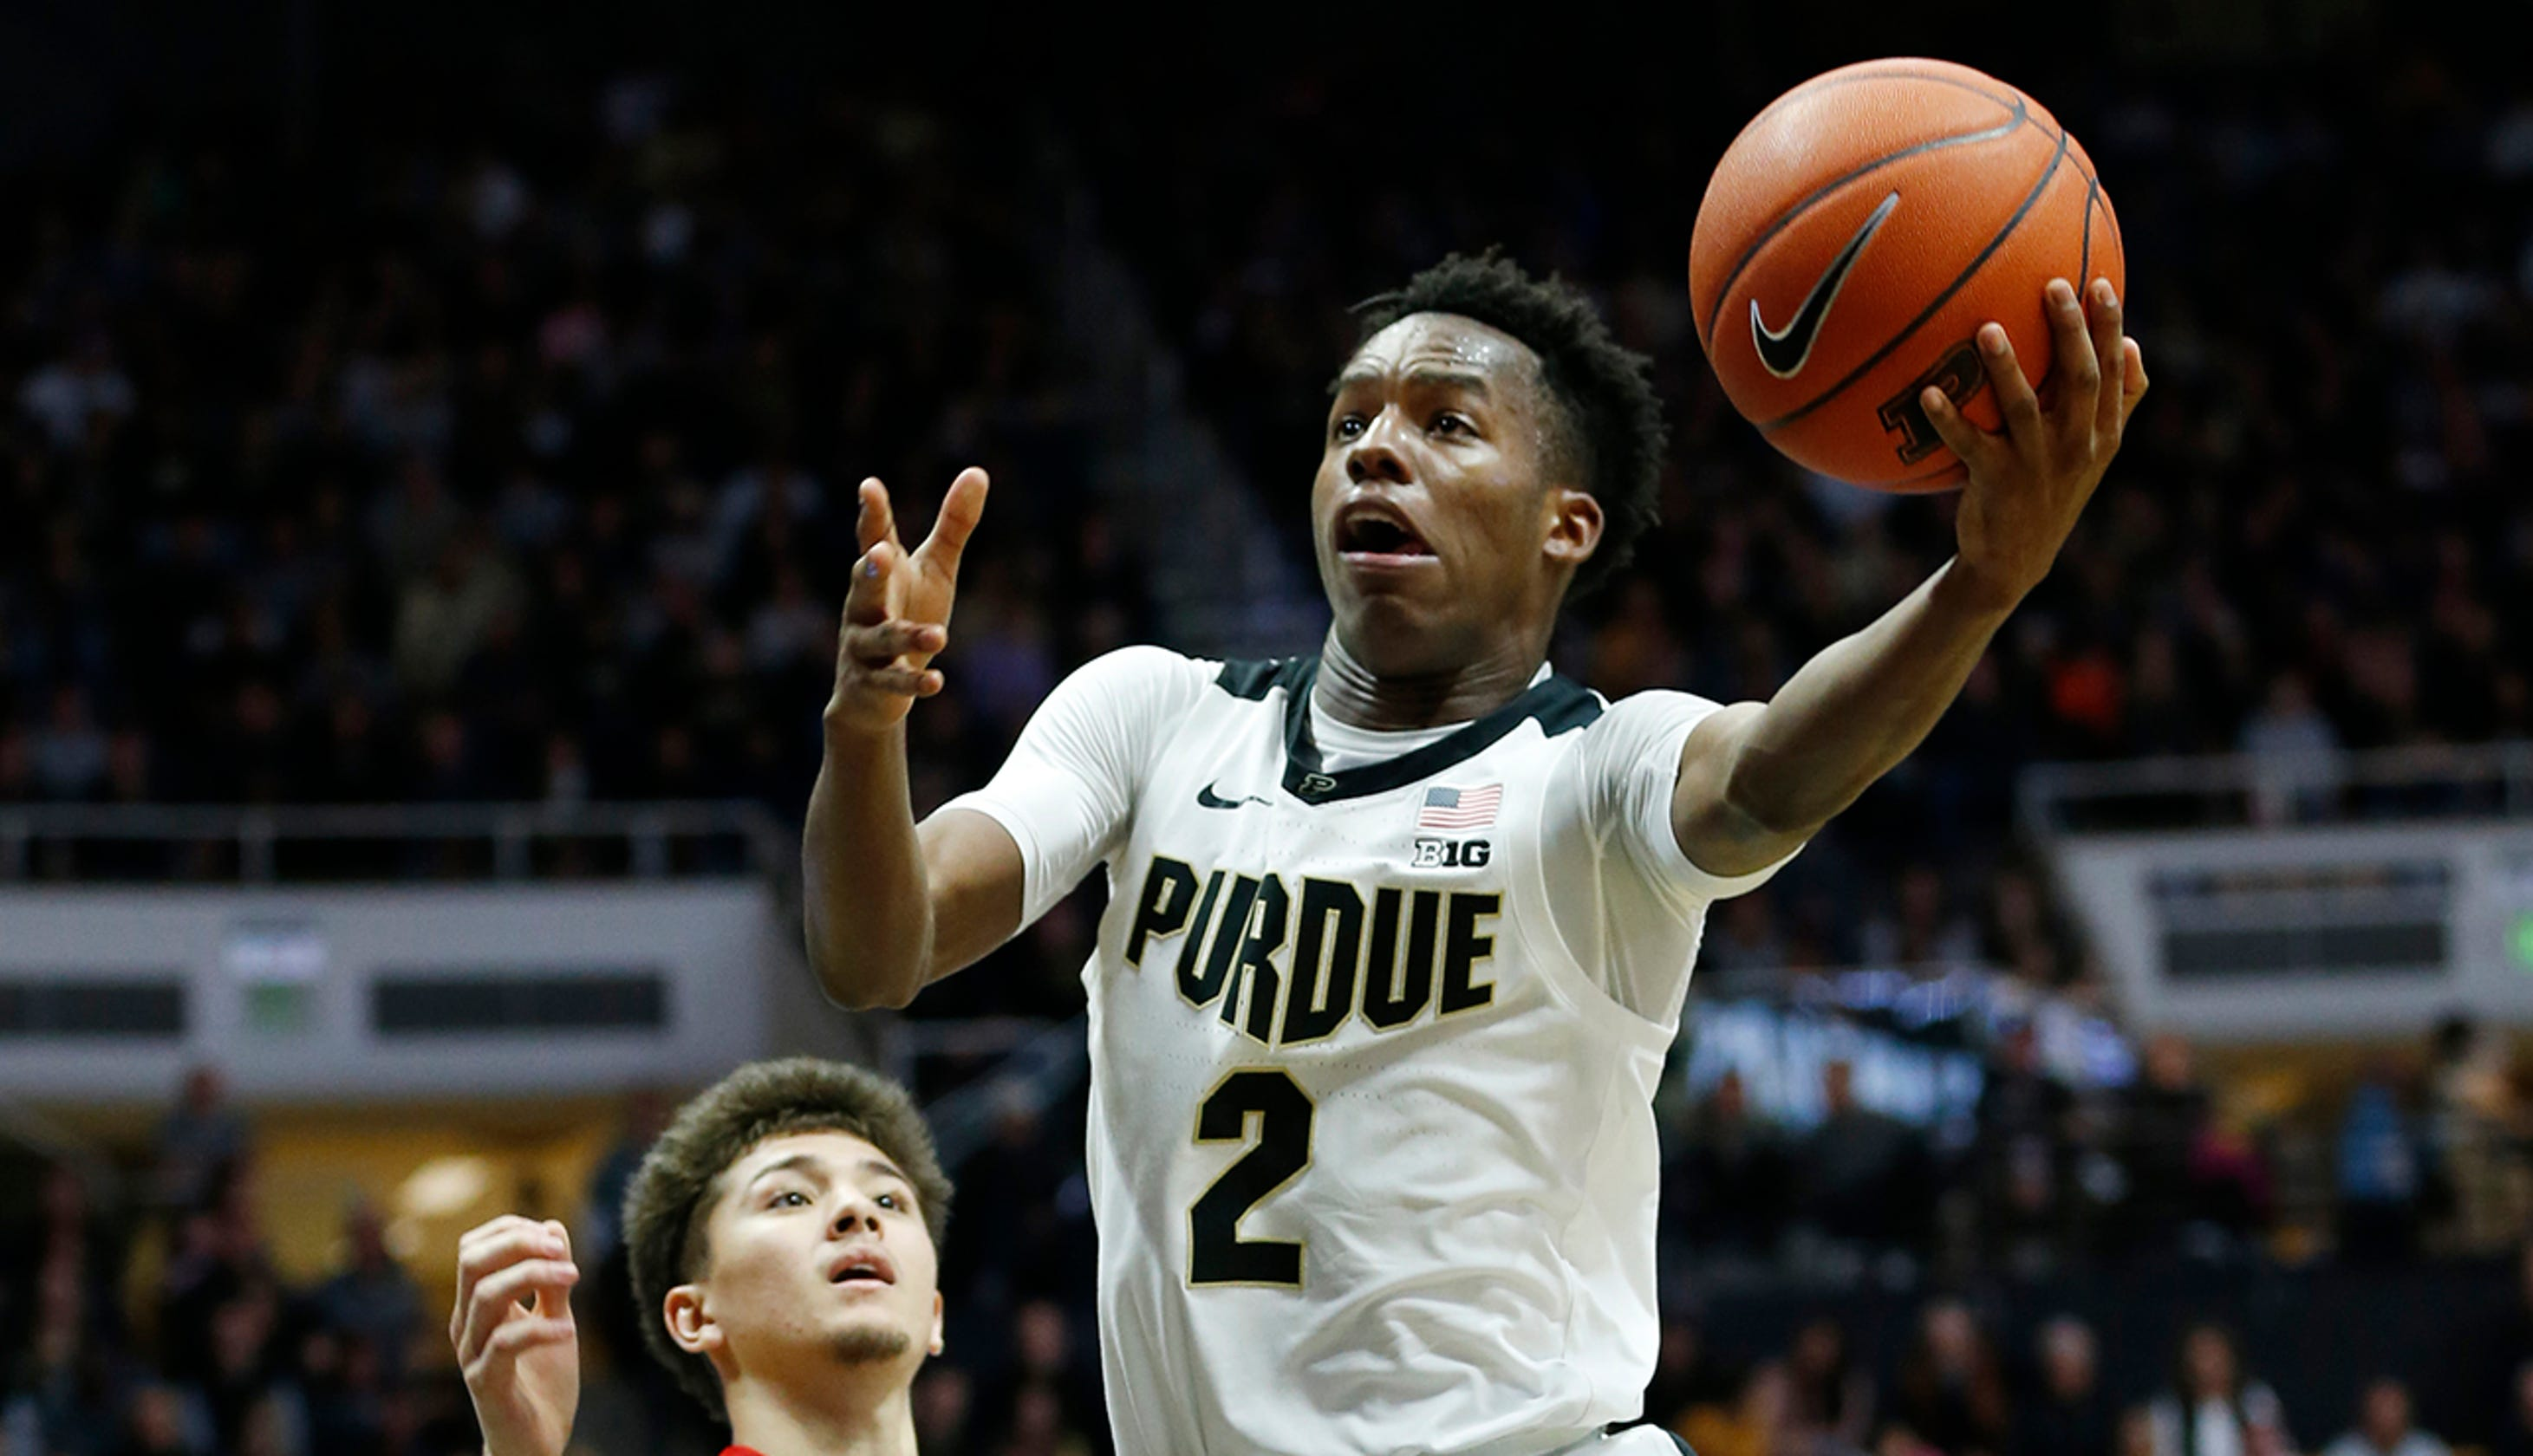 purdue basketball faces defining stretch over the next five games